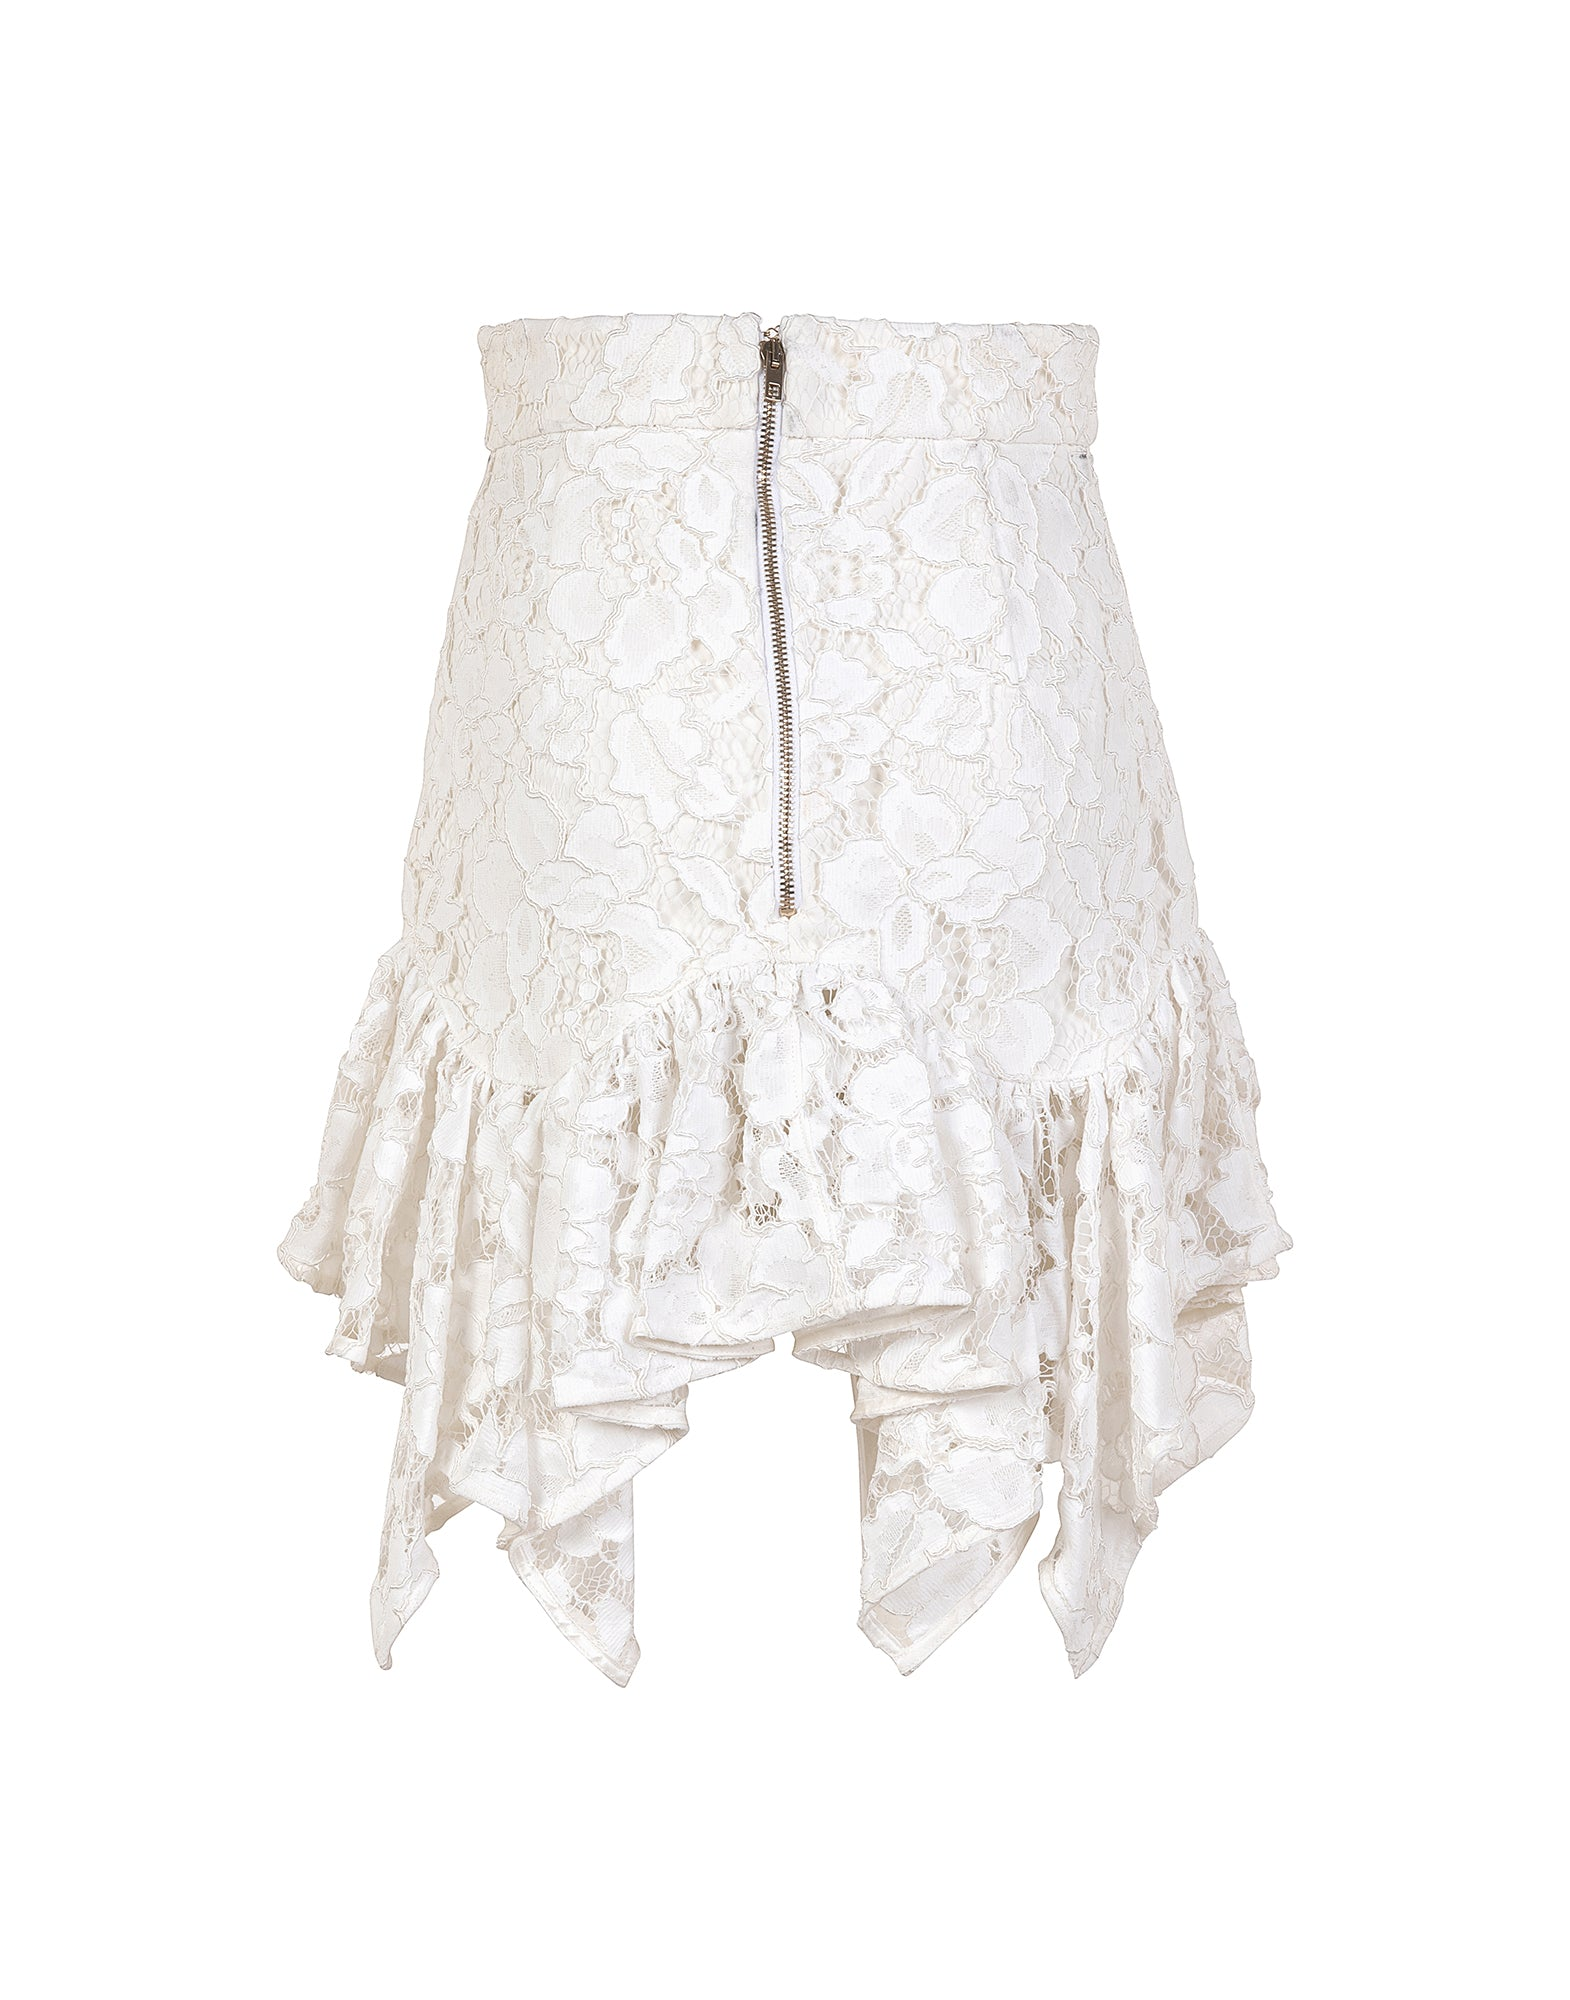 Mini skirt in lace